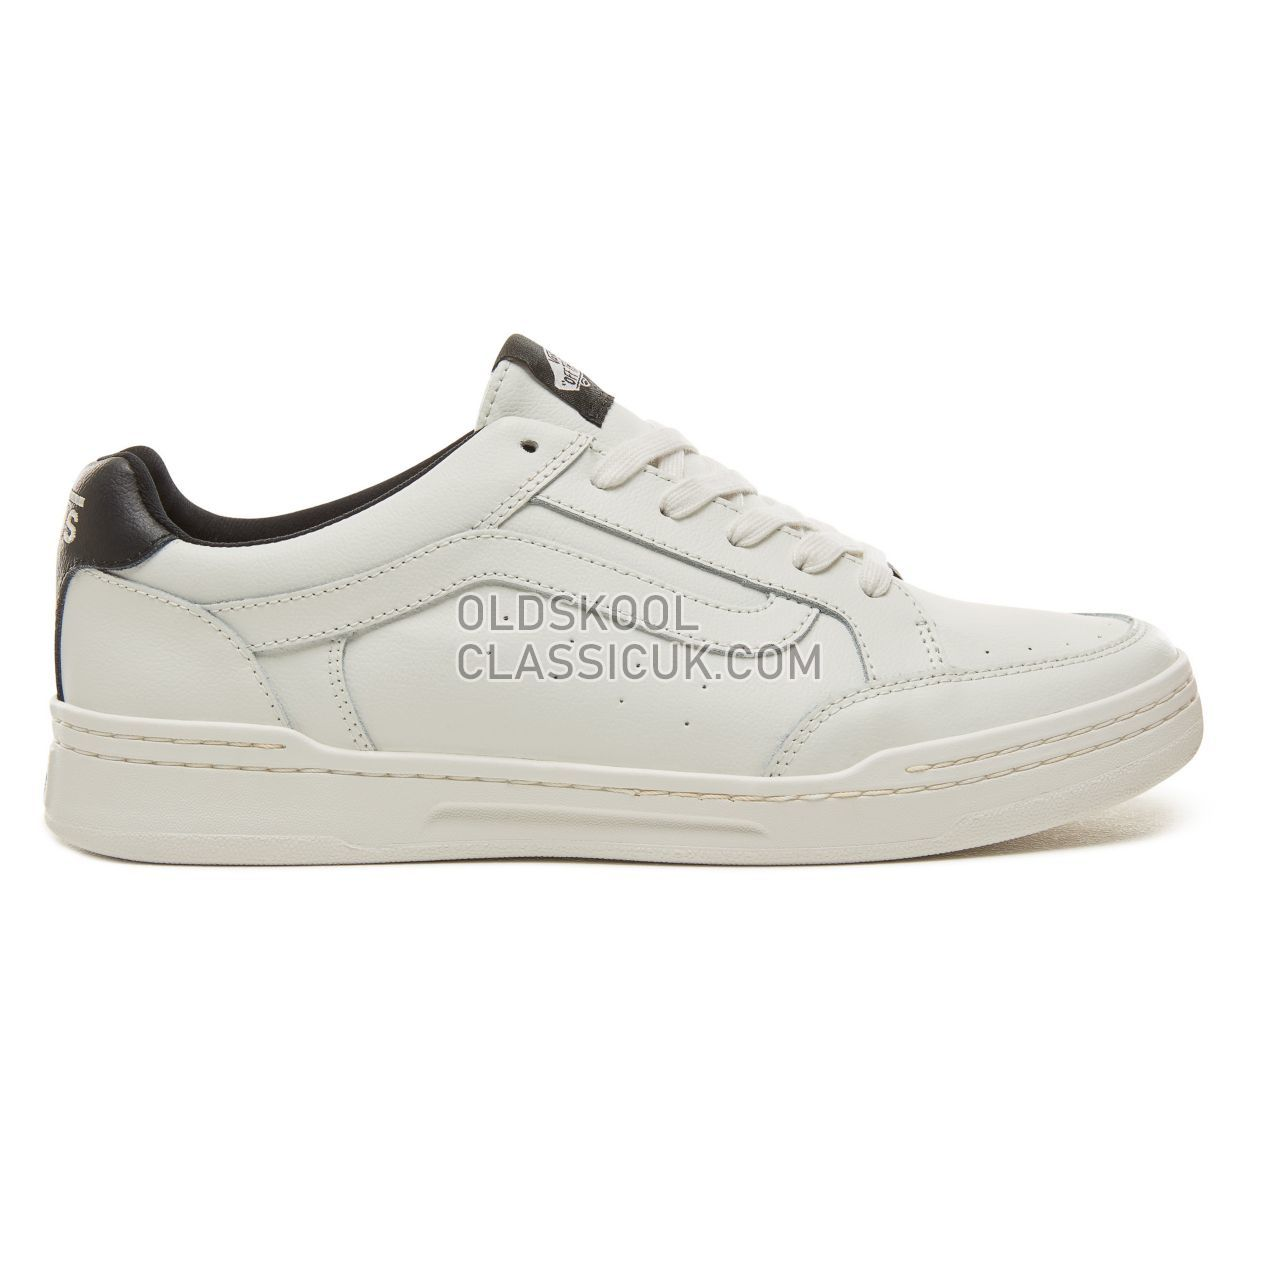 Vans Sporty Highland Sneakers Mens (Sporty) Blanc De Blanc/Black VA38FDU8Y Shoes